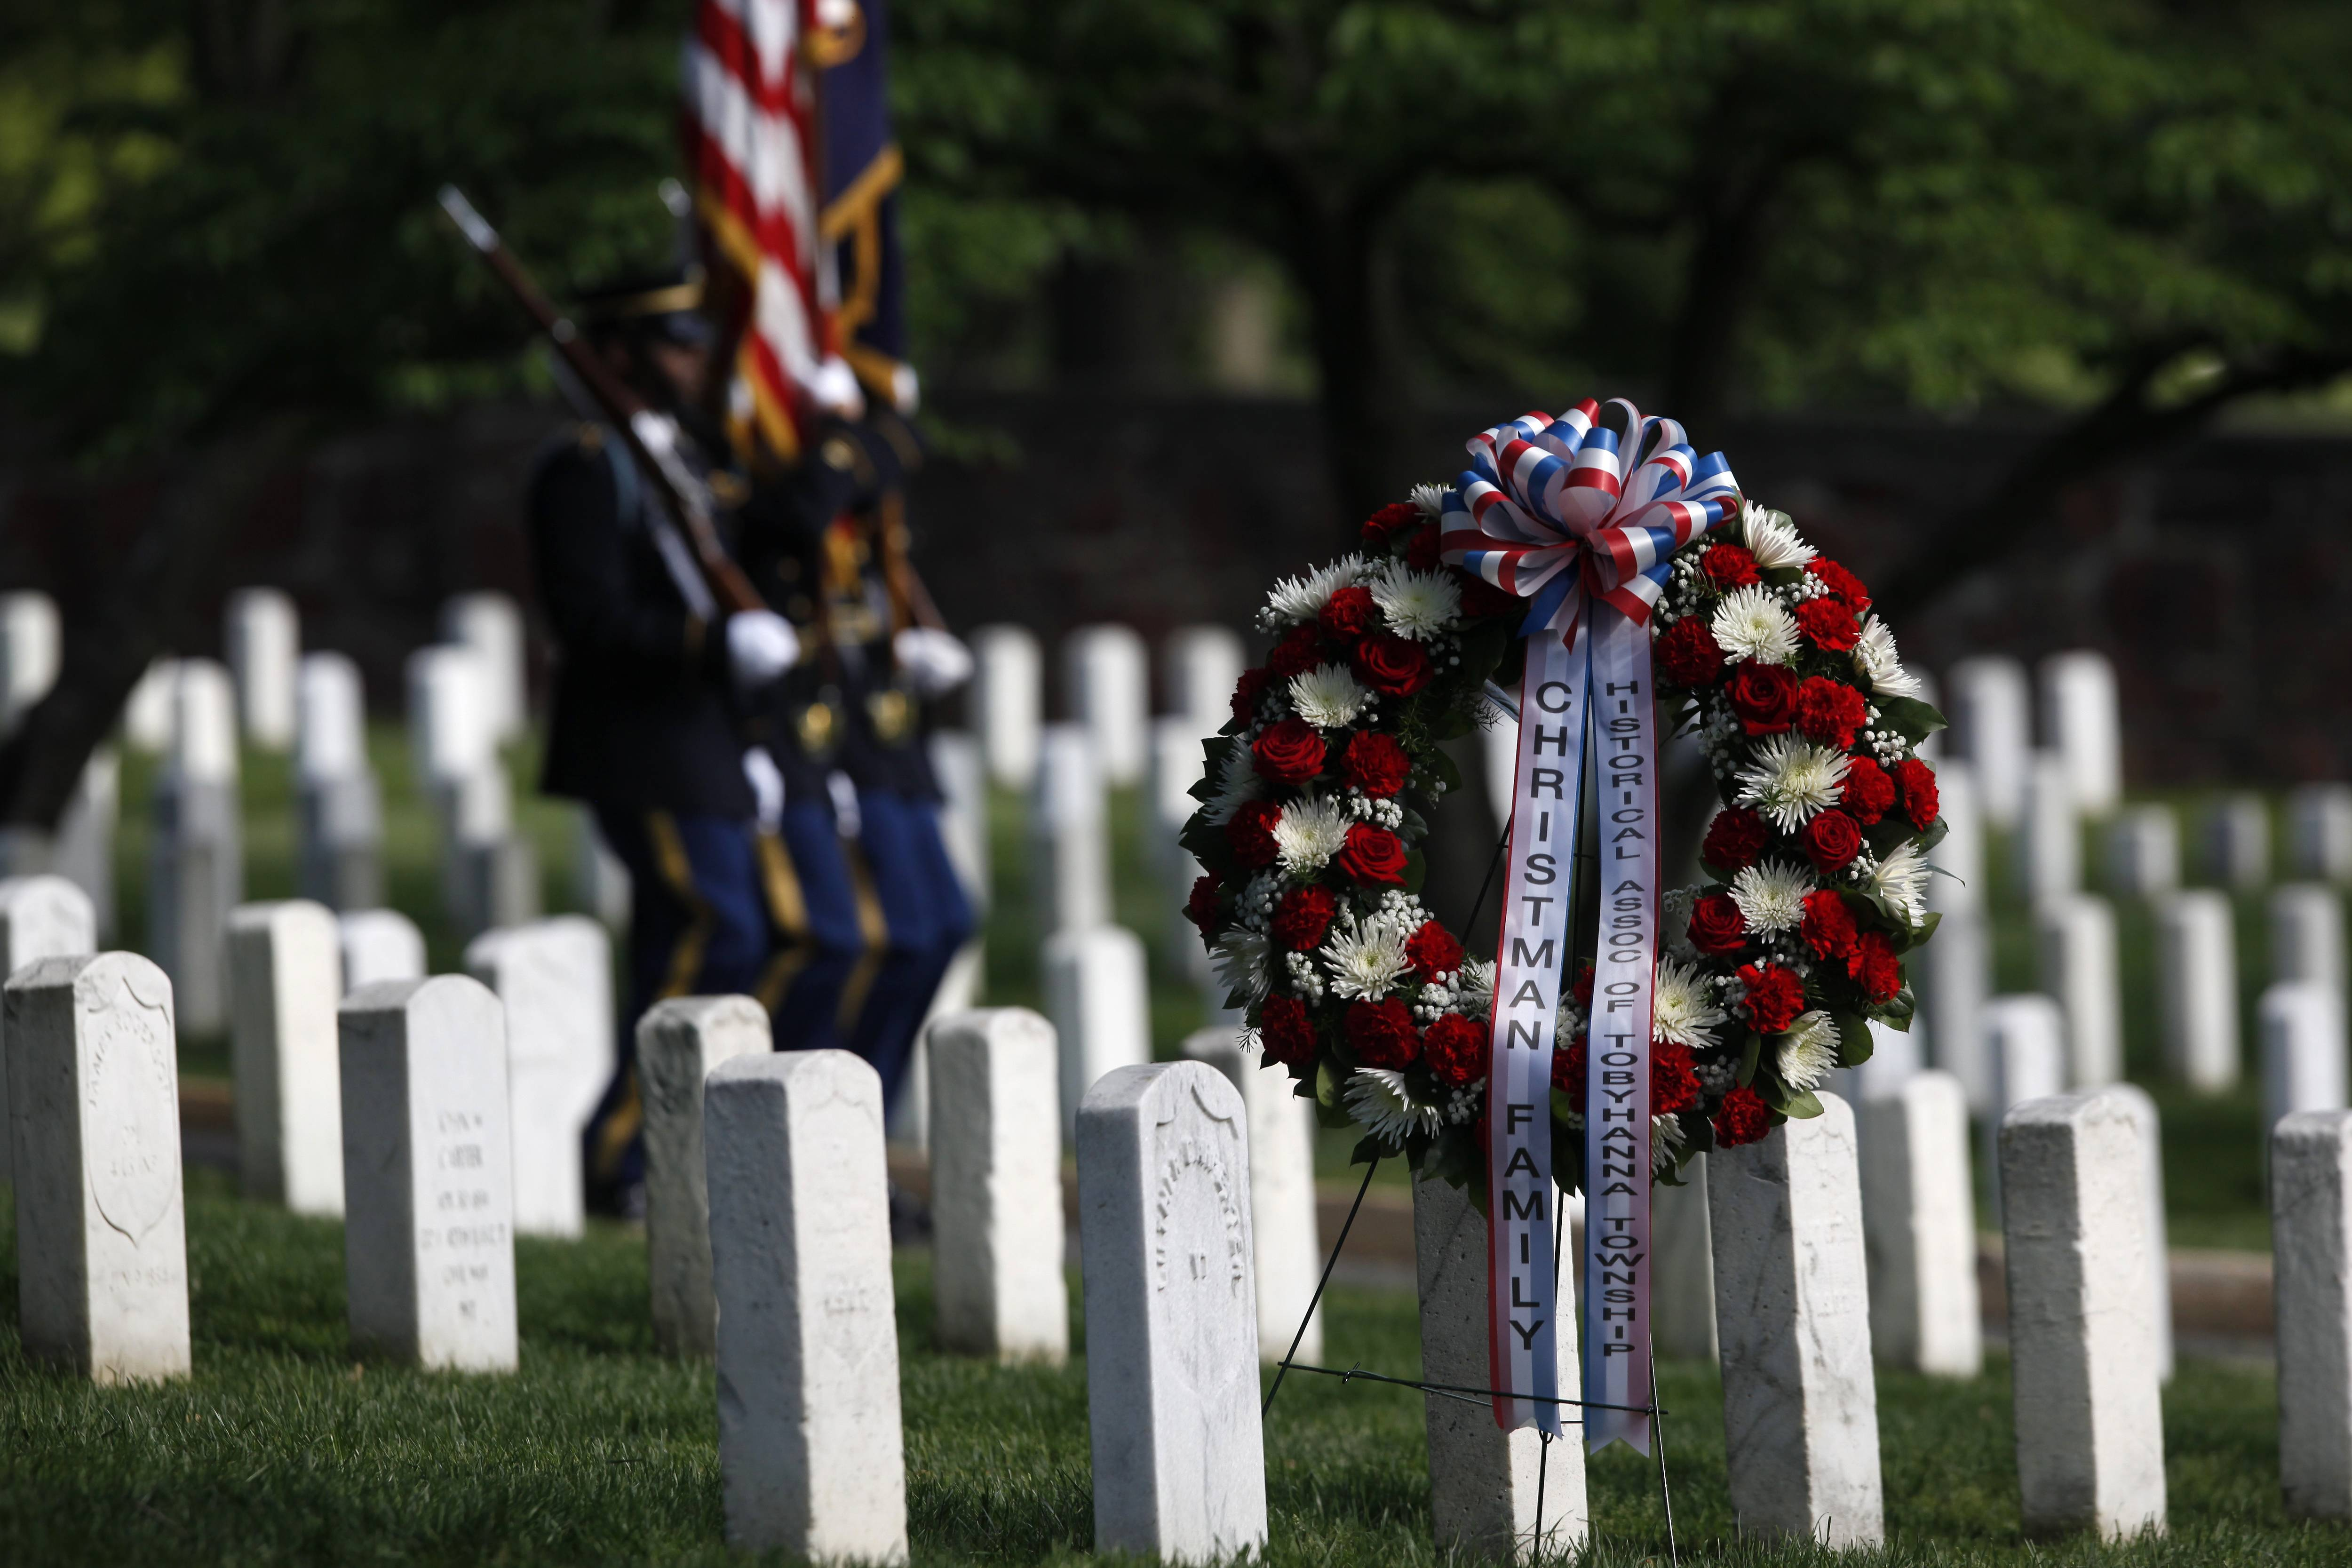 U.S. Army honor guard arrive before the wreath laying at the gravesite of Army Pvt. William Christman, who was the first military burial at the cemetery, marking the beginning of commemorations of the 150th anniversary of Arlington National Cemetery in Arlington, Va., Tuesday.